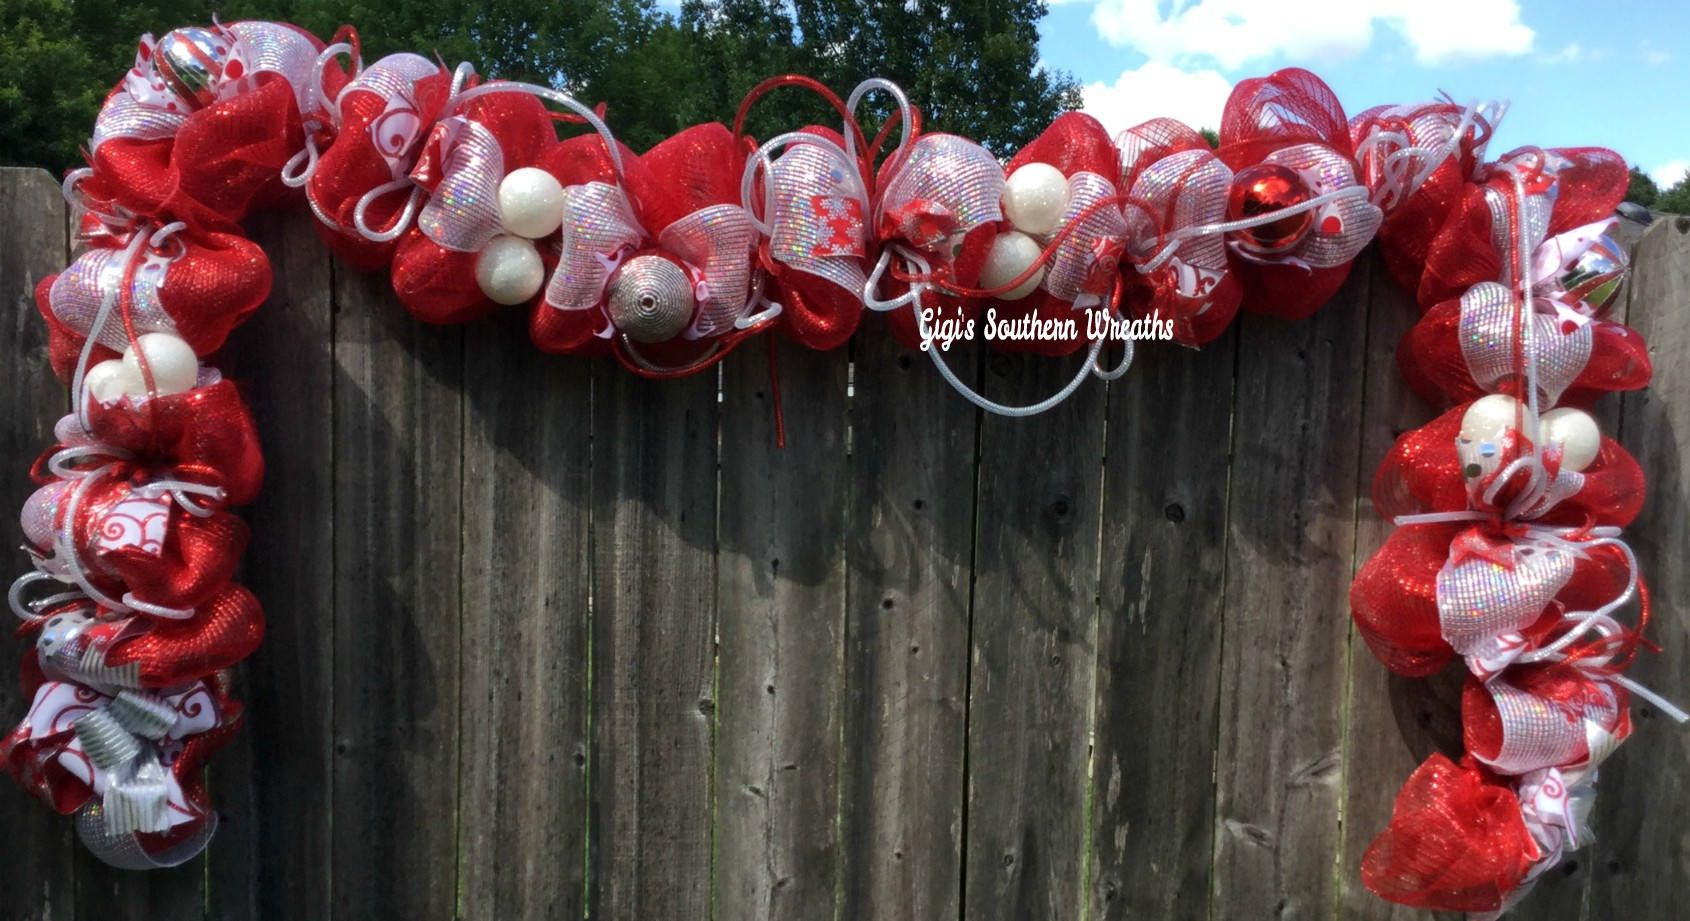 9 Ft Garland Red White And Silver Christmas Mantle Door Deco Mesh By Gigissouthernwreaths On Etsy